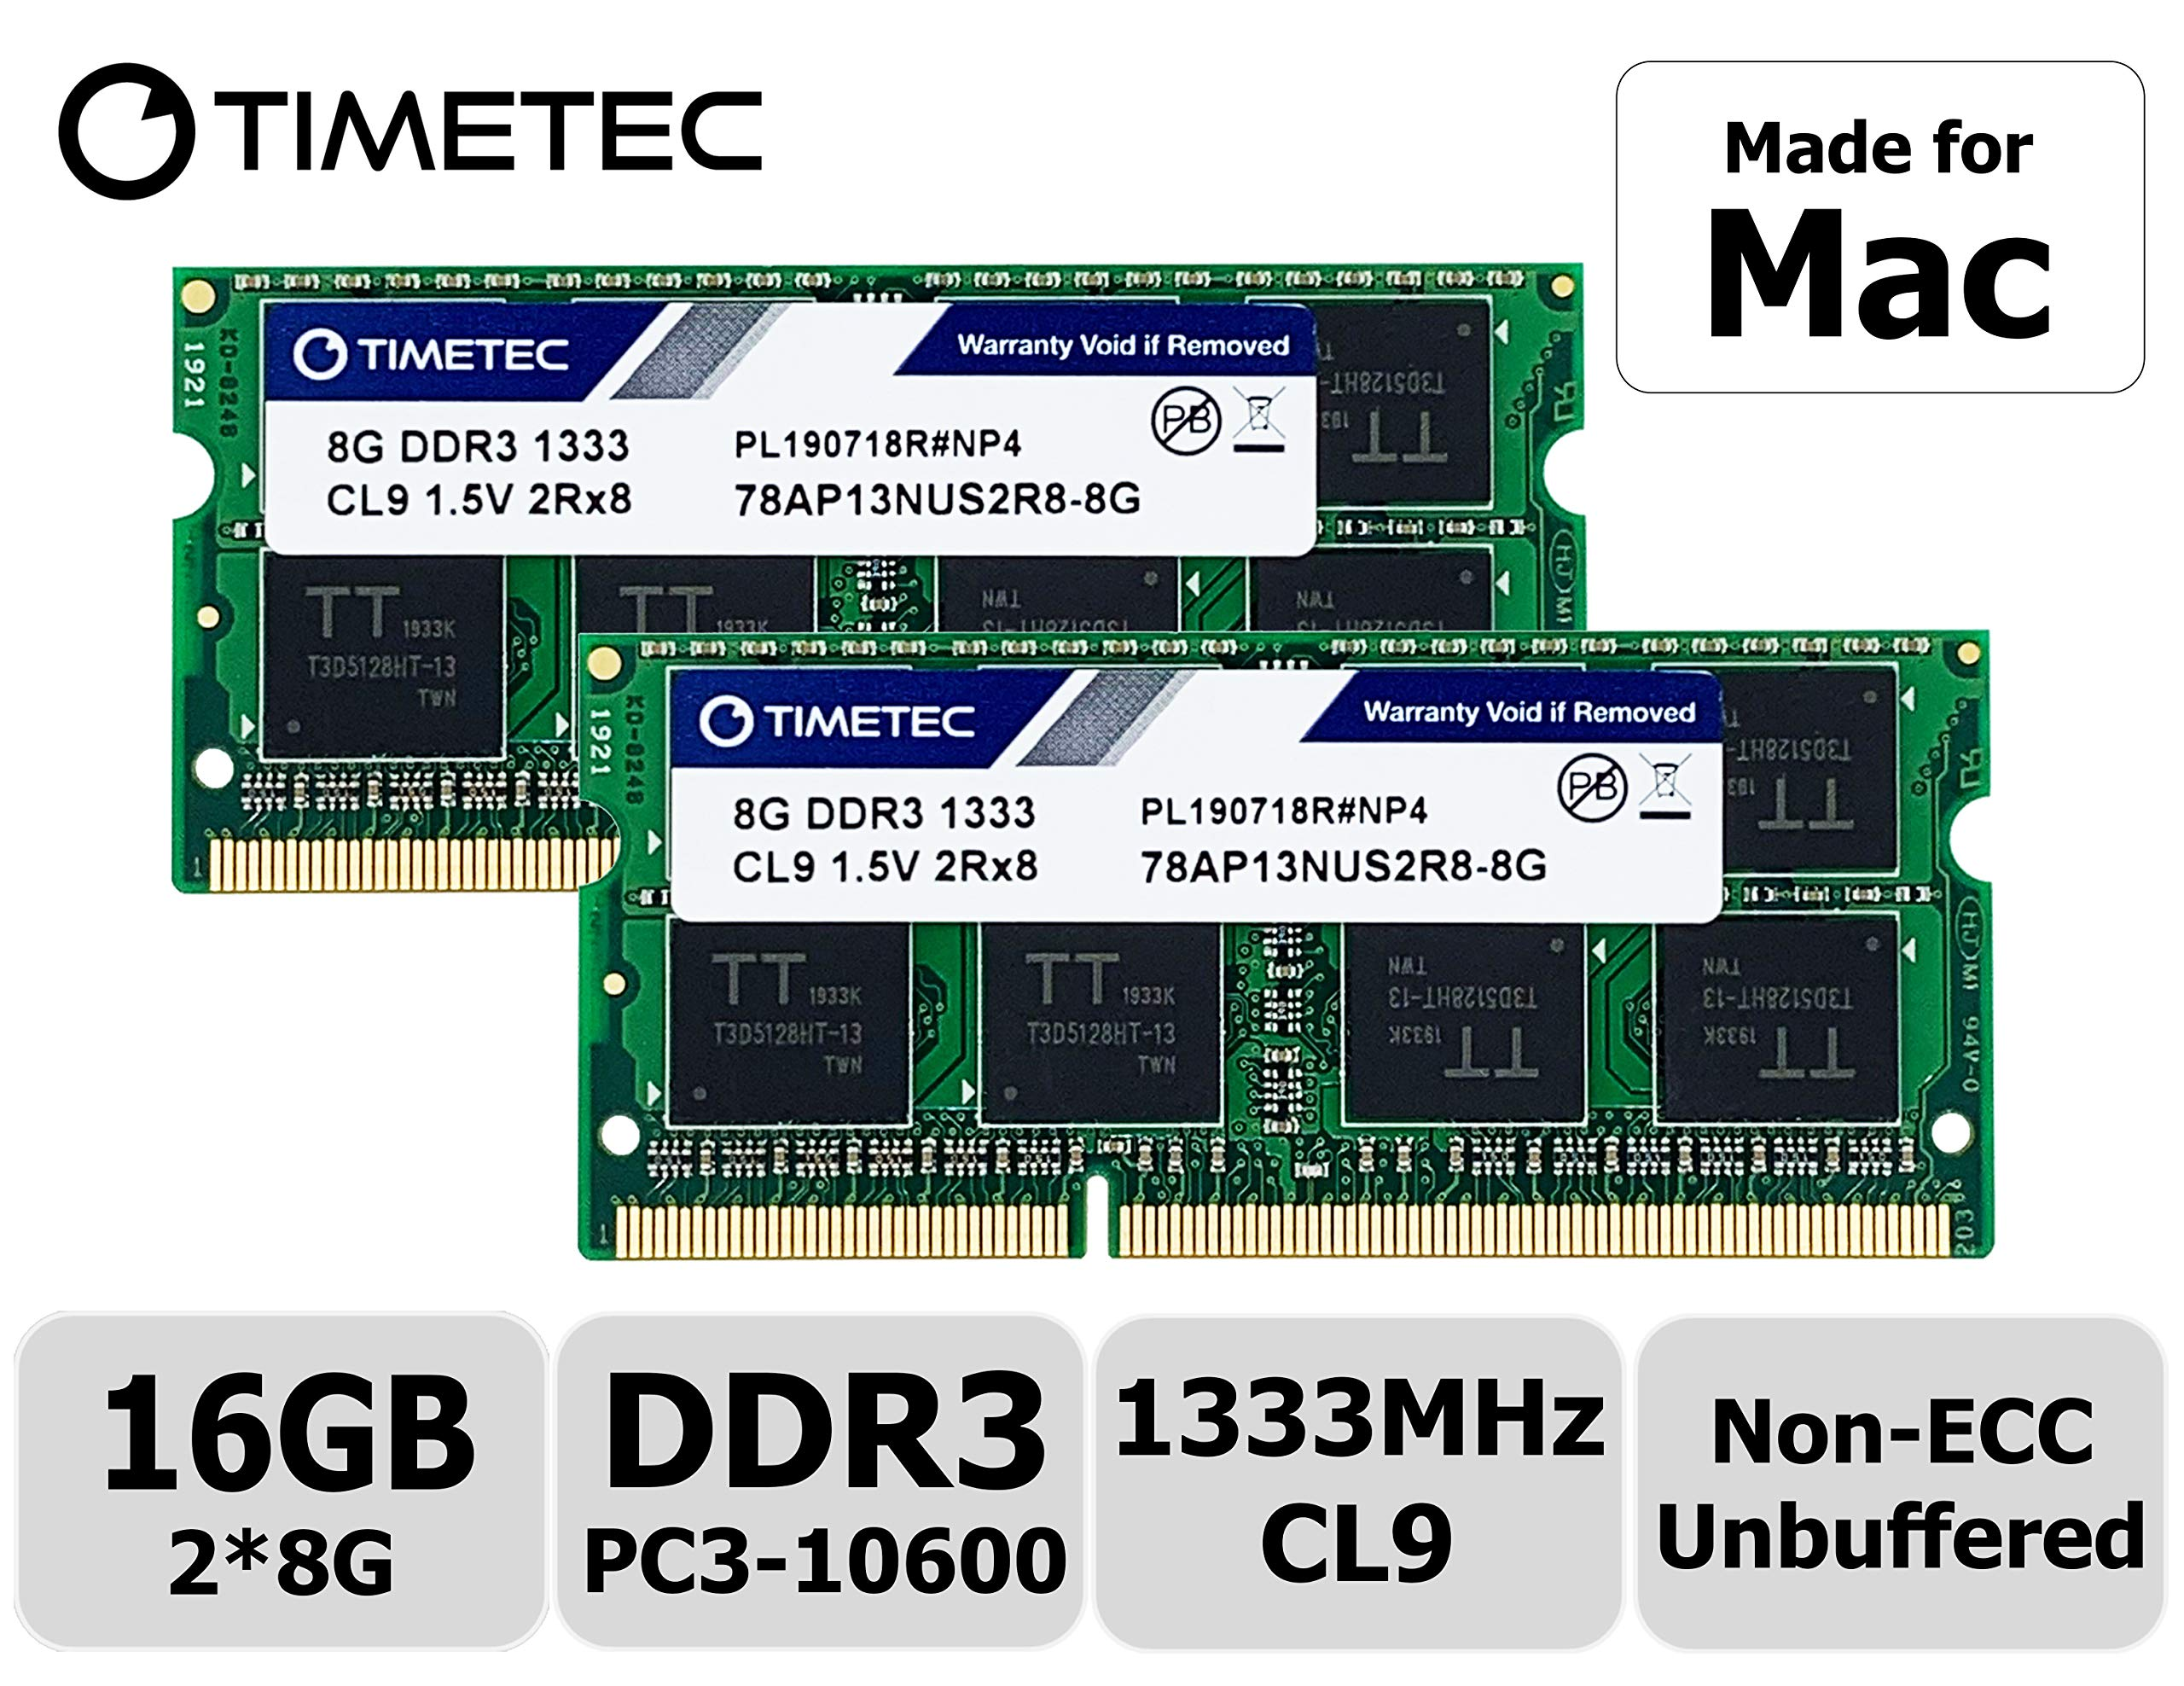 Timetec Hynix IC 16GB KIT(2x8GB) Compatible for Apple DDR3 1333MHz PC3-10600 for Early/Late 2011 13/15/17 inch MacBook Pro, Mid 2010 Mid/Late 2011 21.5/27 inch iMac, Mid 2011 Mac Mini(16GB KIT(2x8GB)) by Timetec